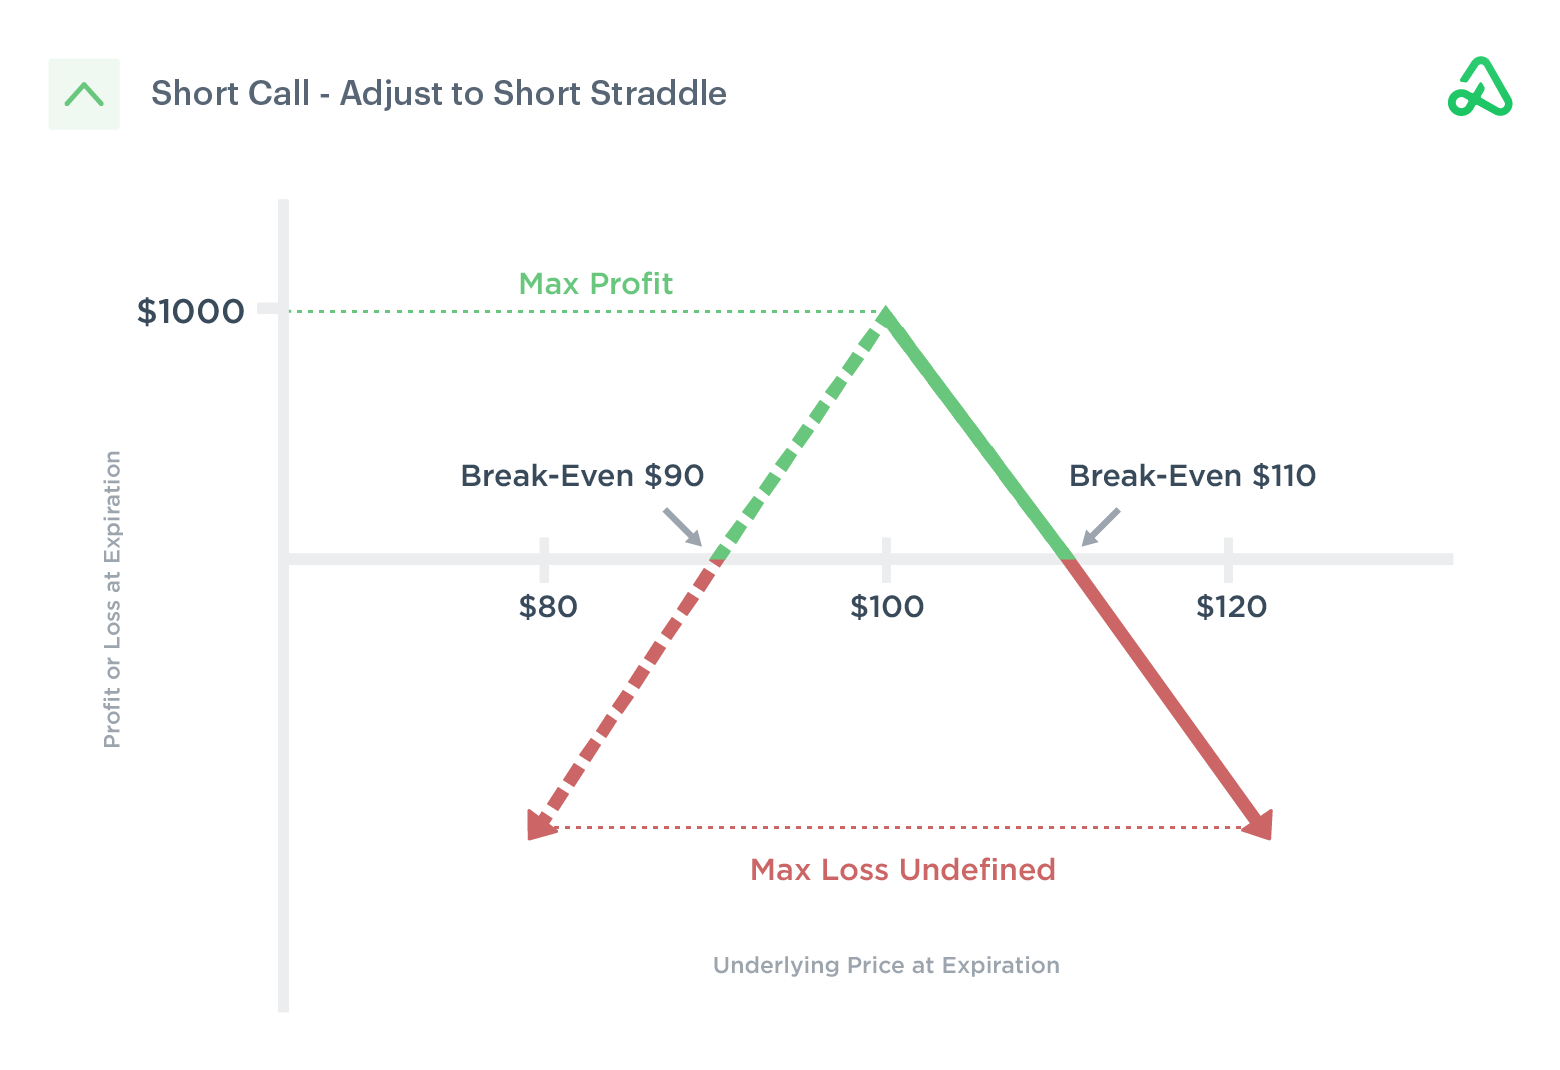 Image of short call adjusted to a short straddle